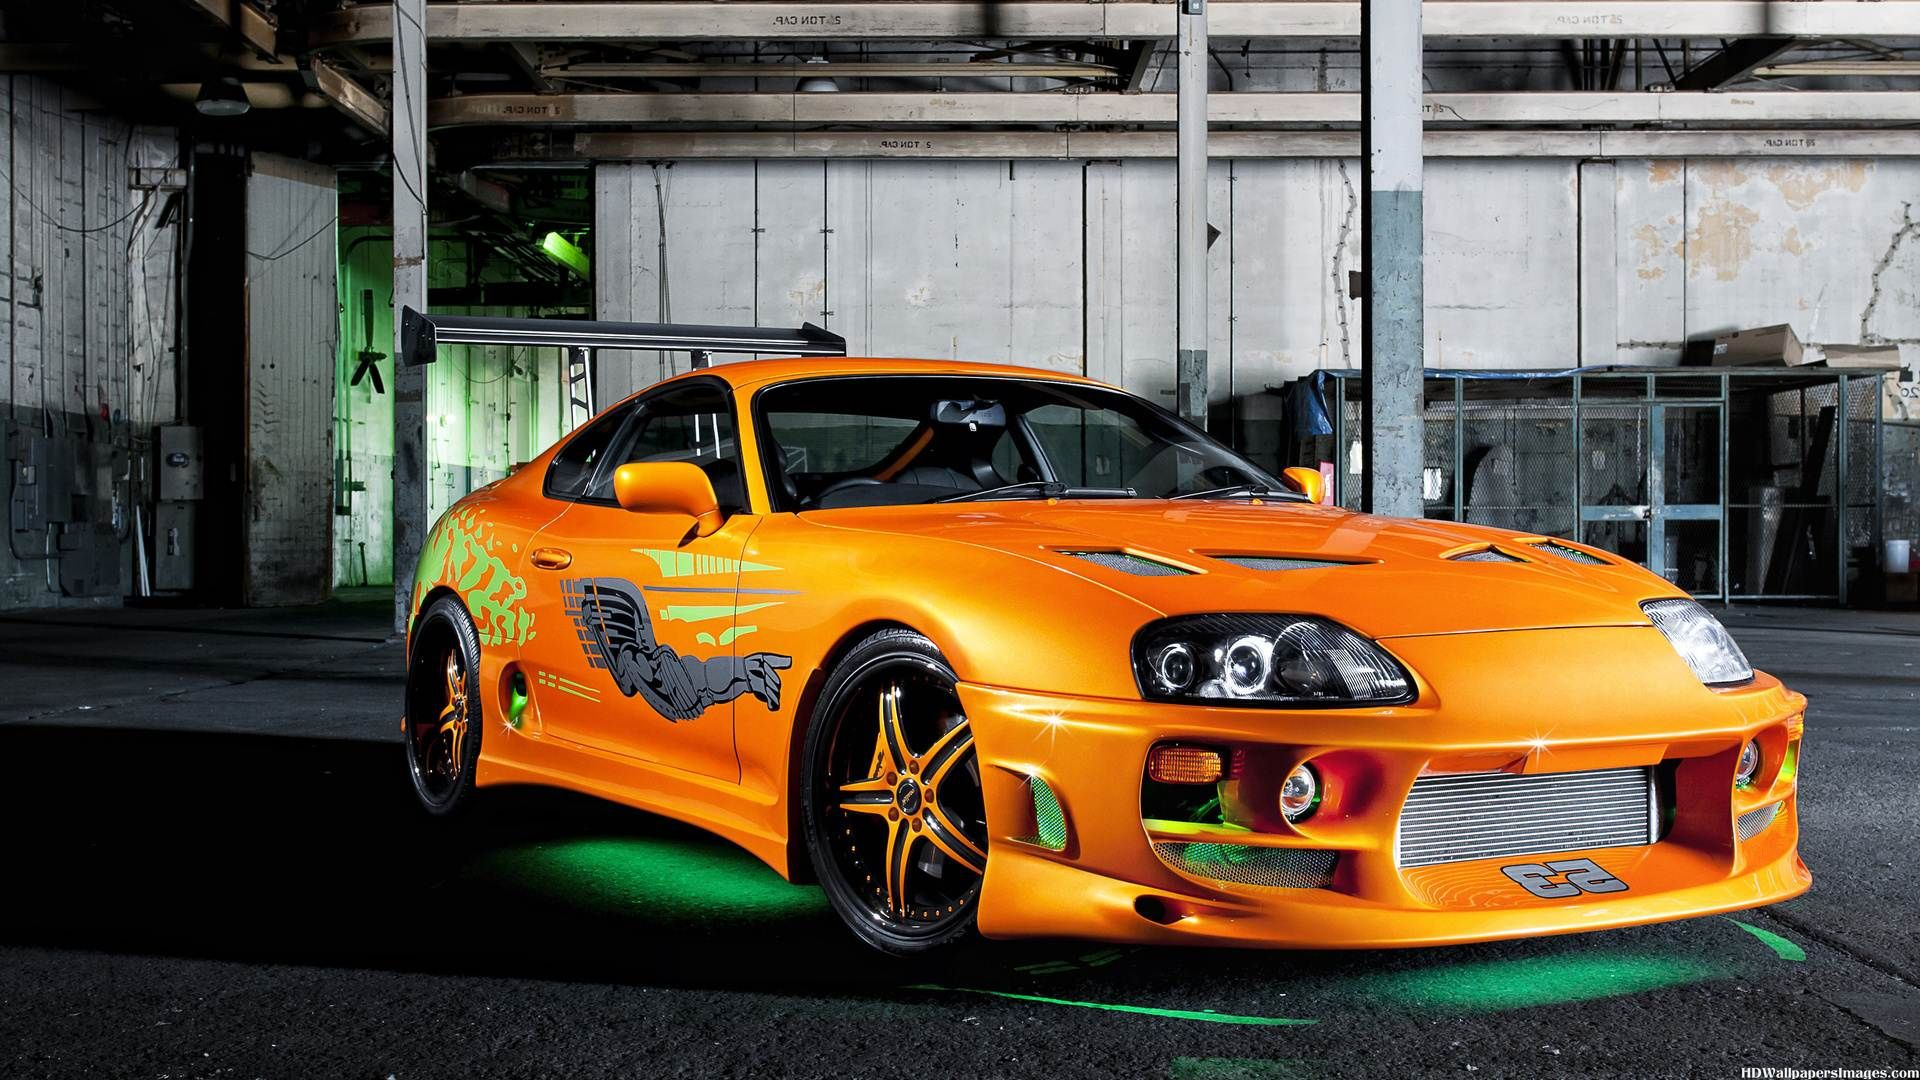 Toyota Supra Fast And Furious HD Wallpaper   4T4ORG 1920x1080